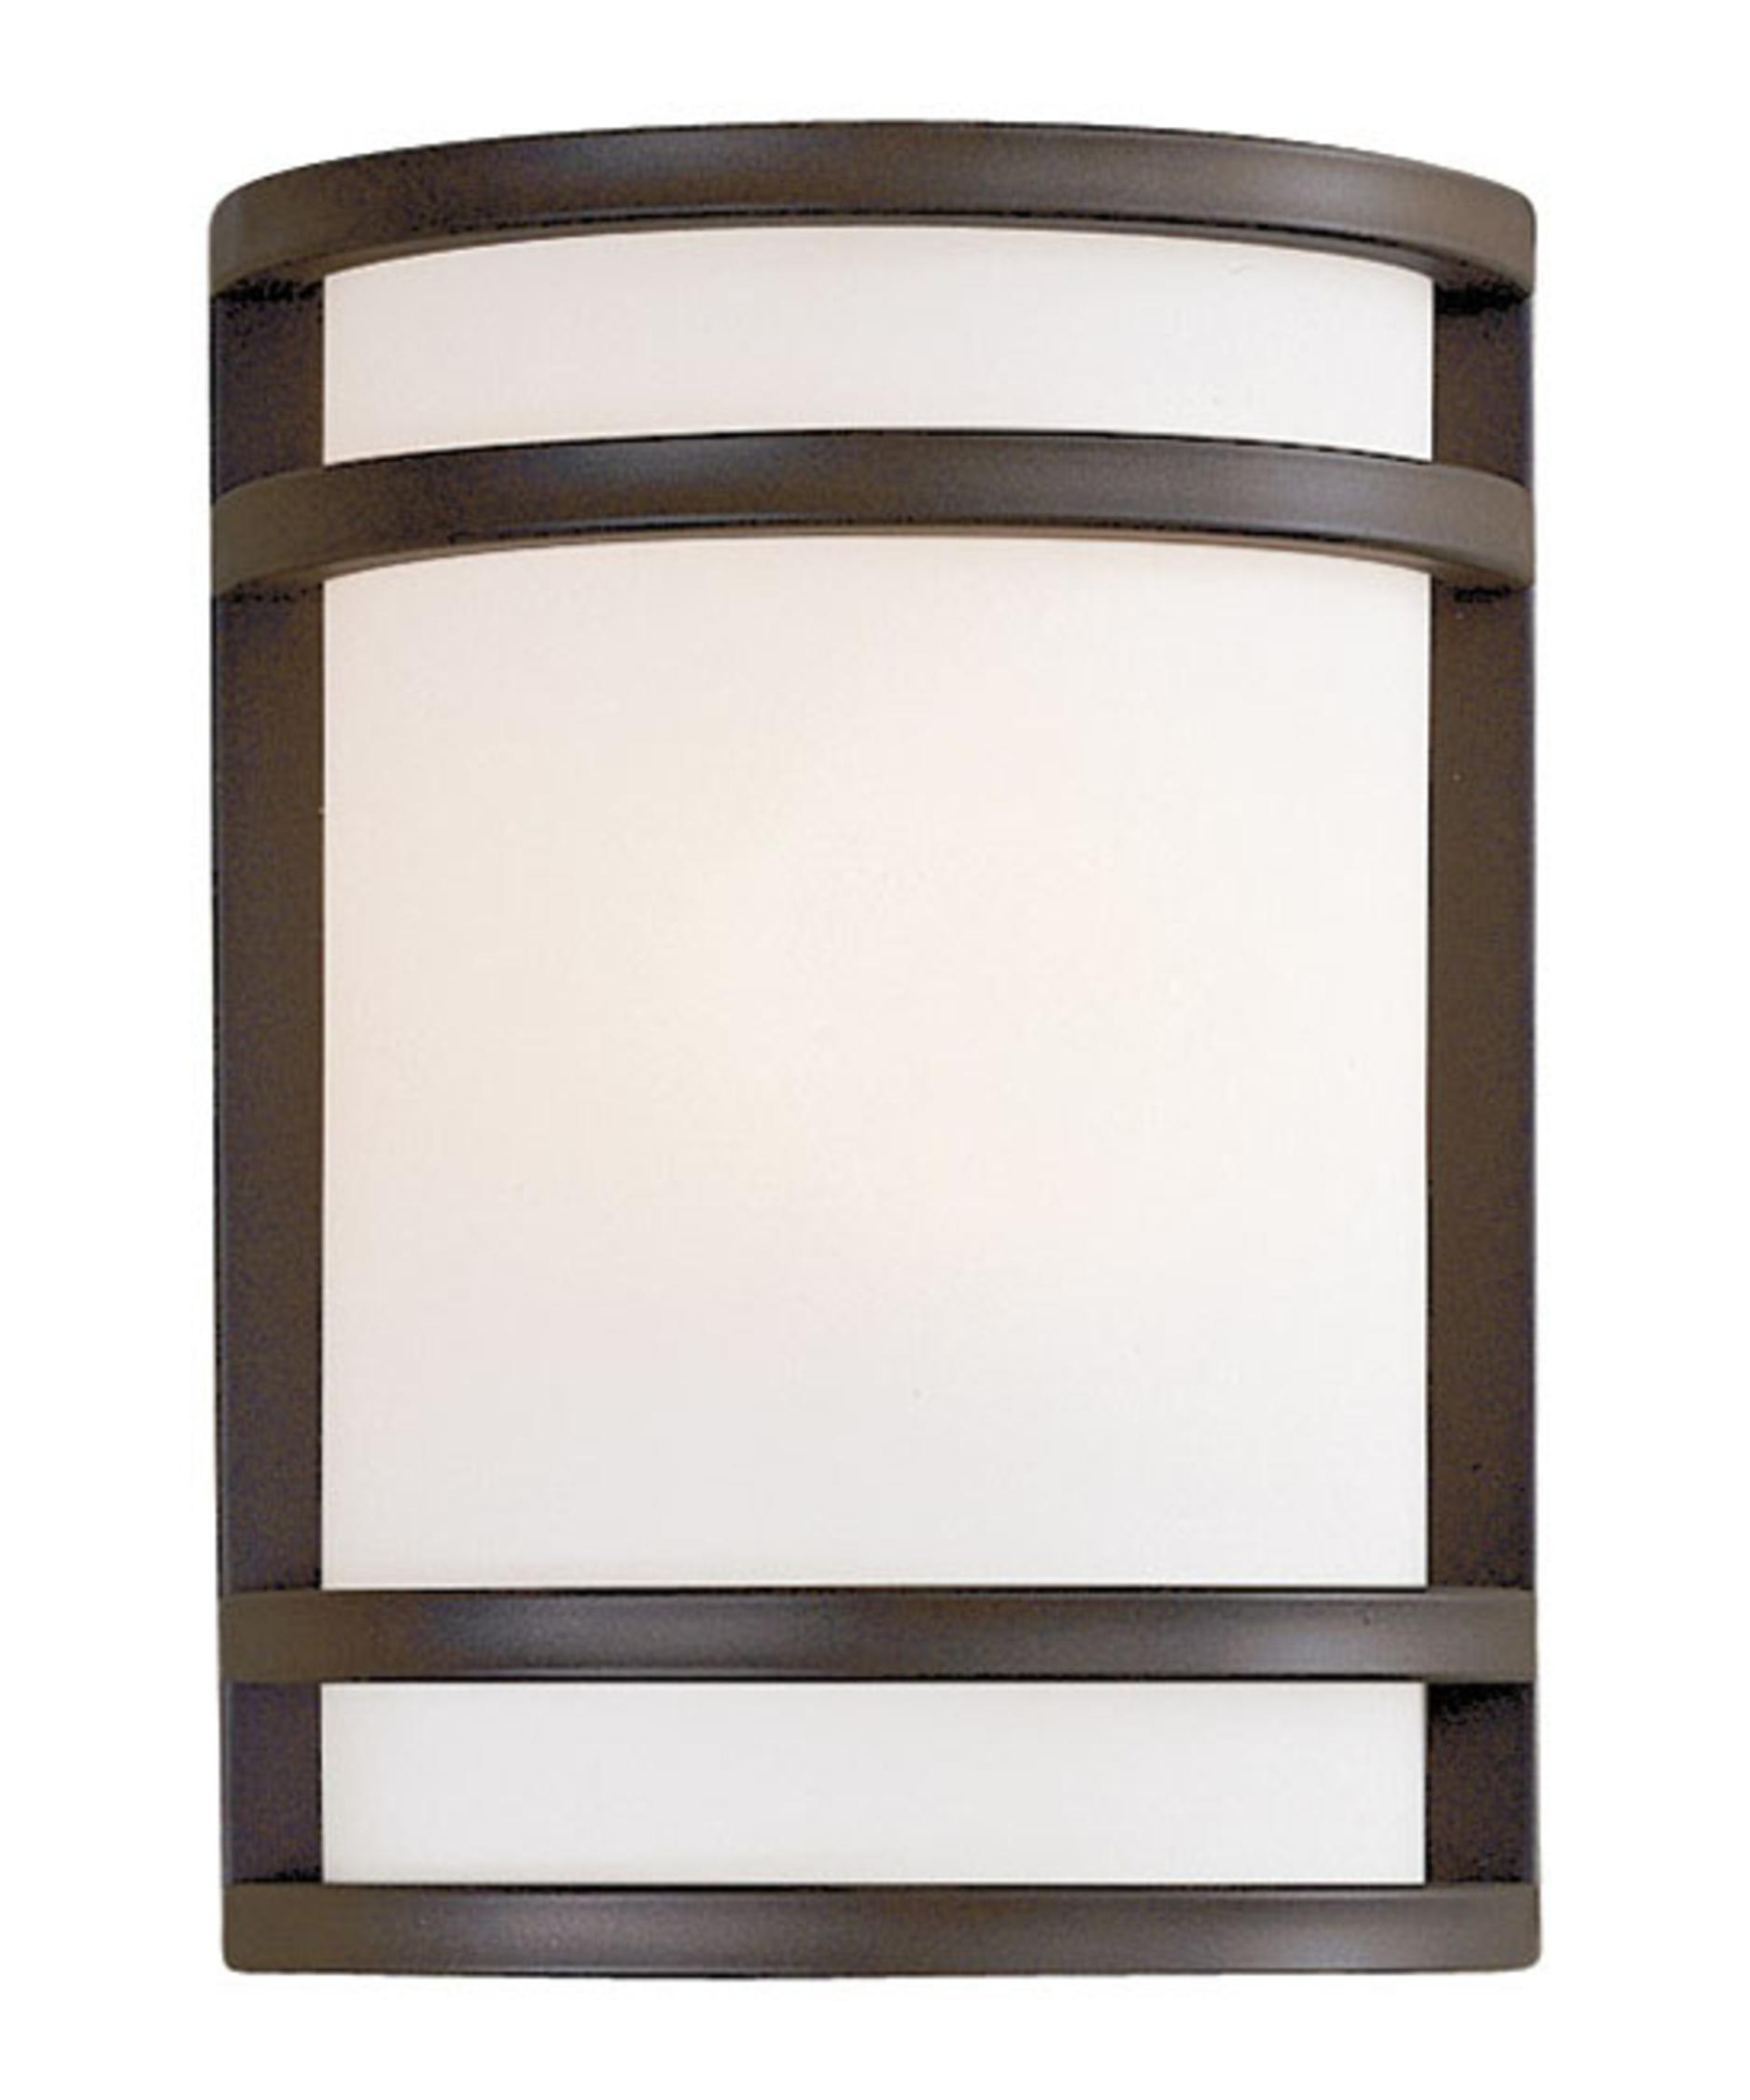 shown in oil rubbed bronze finish and etched opal glass - Minka Lighting